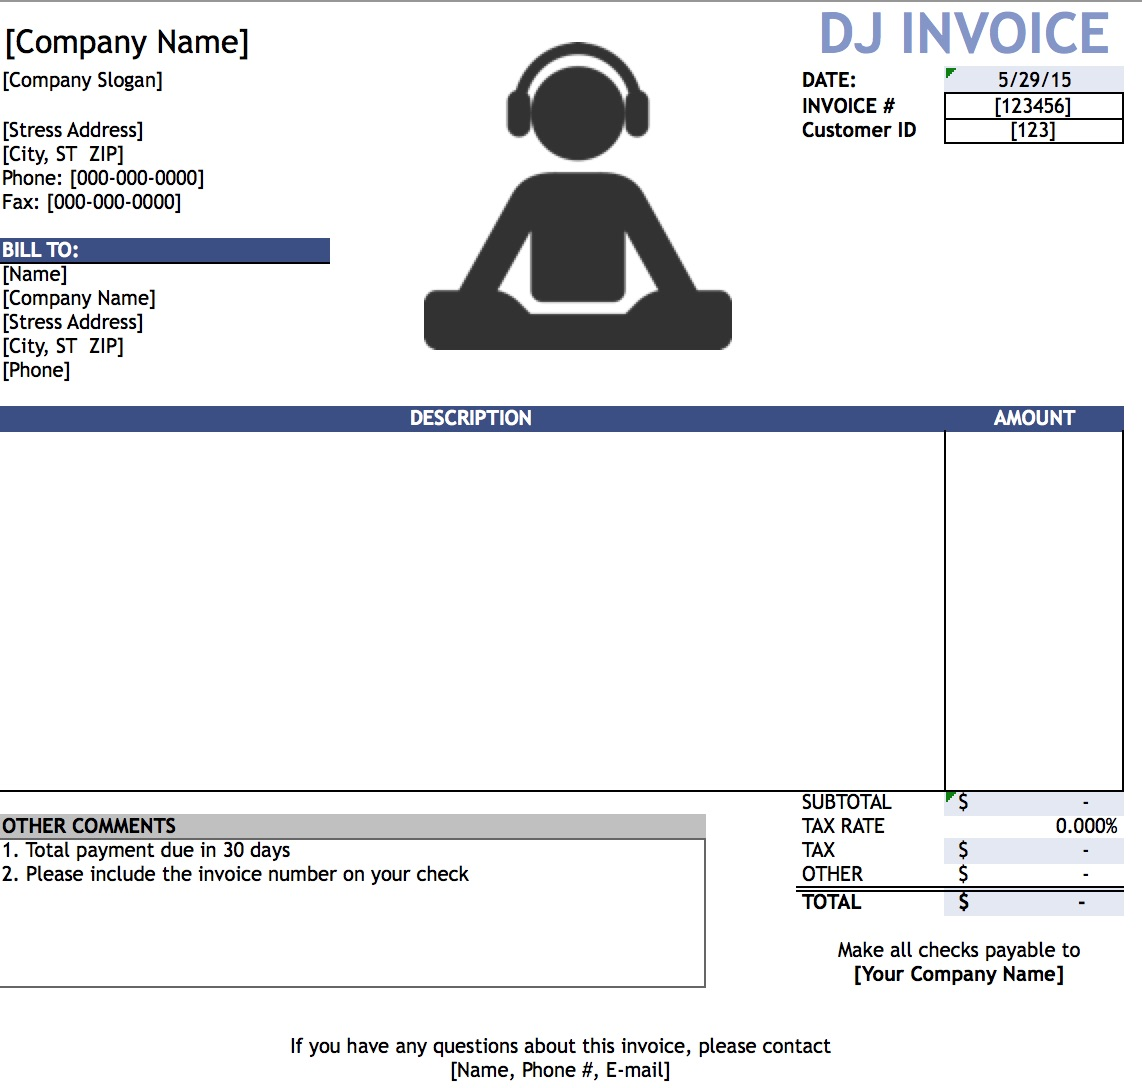 Exceptional Invoice Template.com Regard To Ms Custom Invoice Template